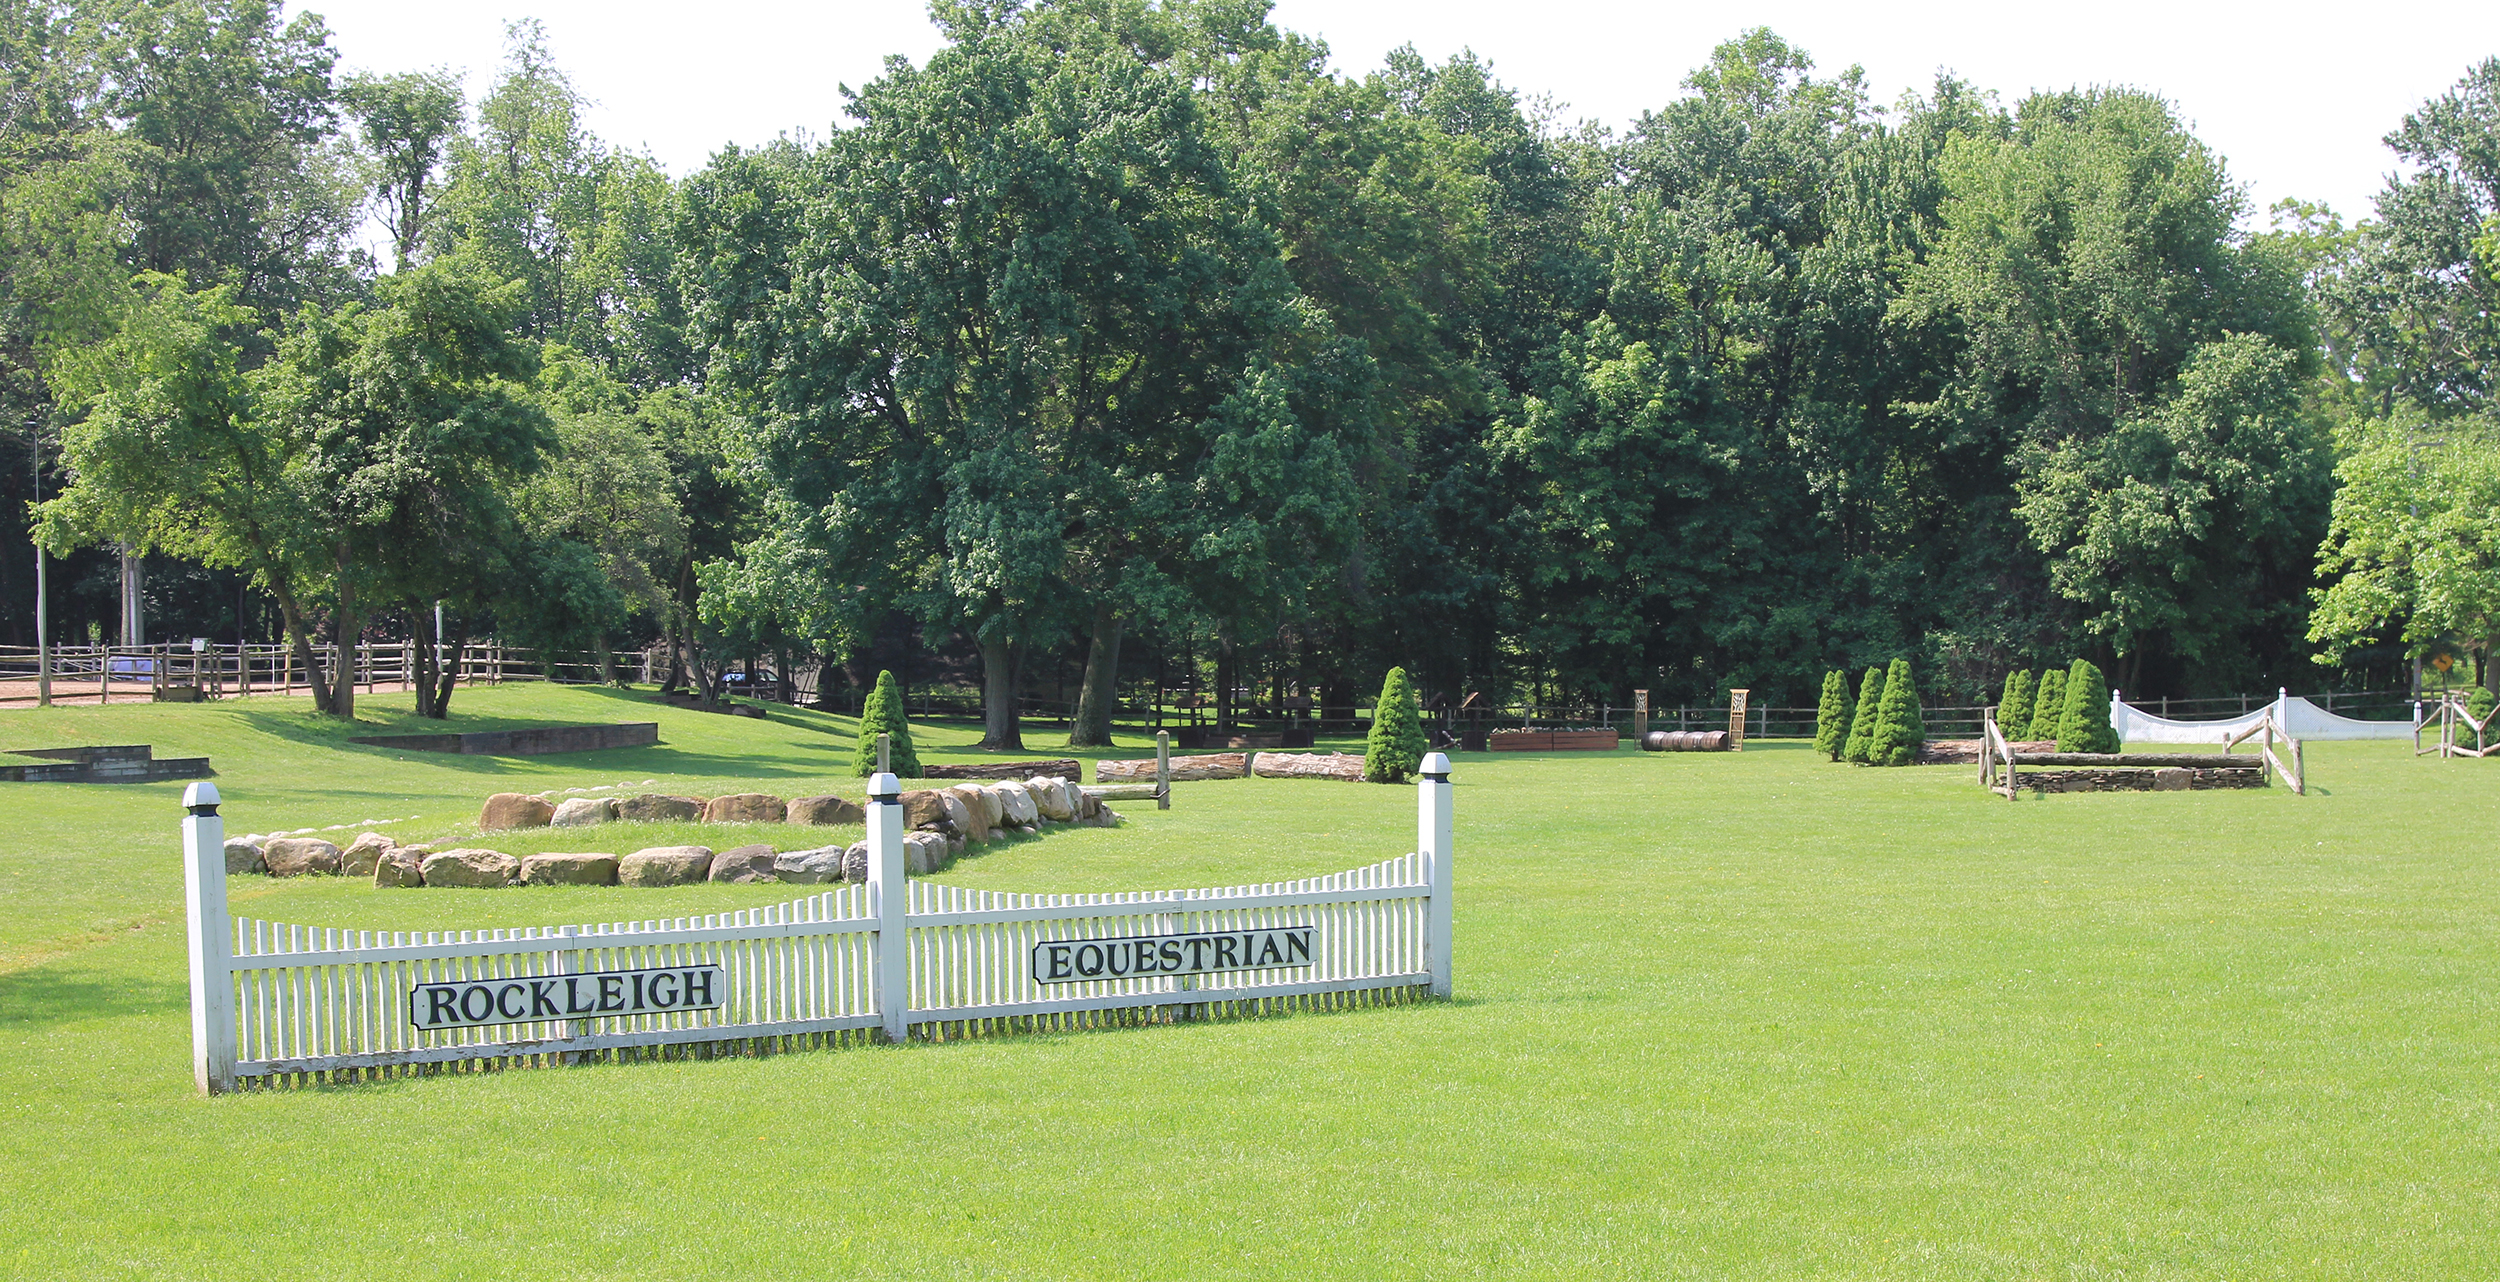 Copy of Rockleigh Equestrian Centre Eventing Field